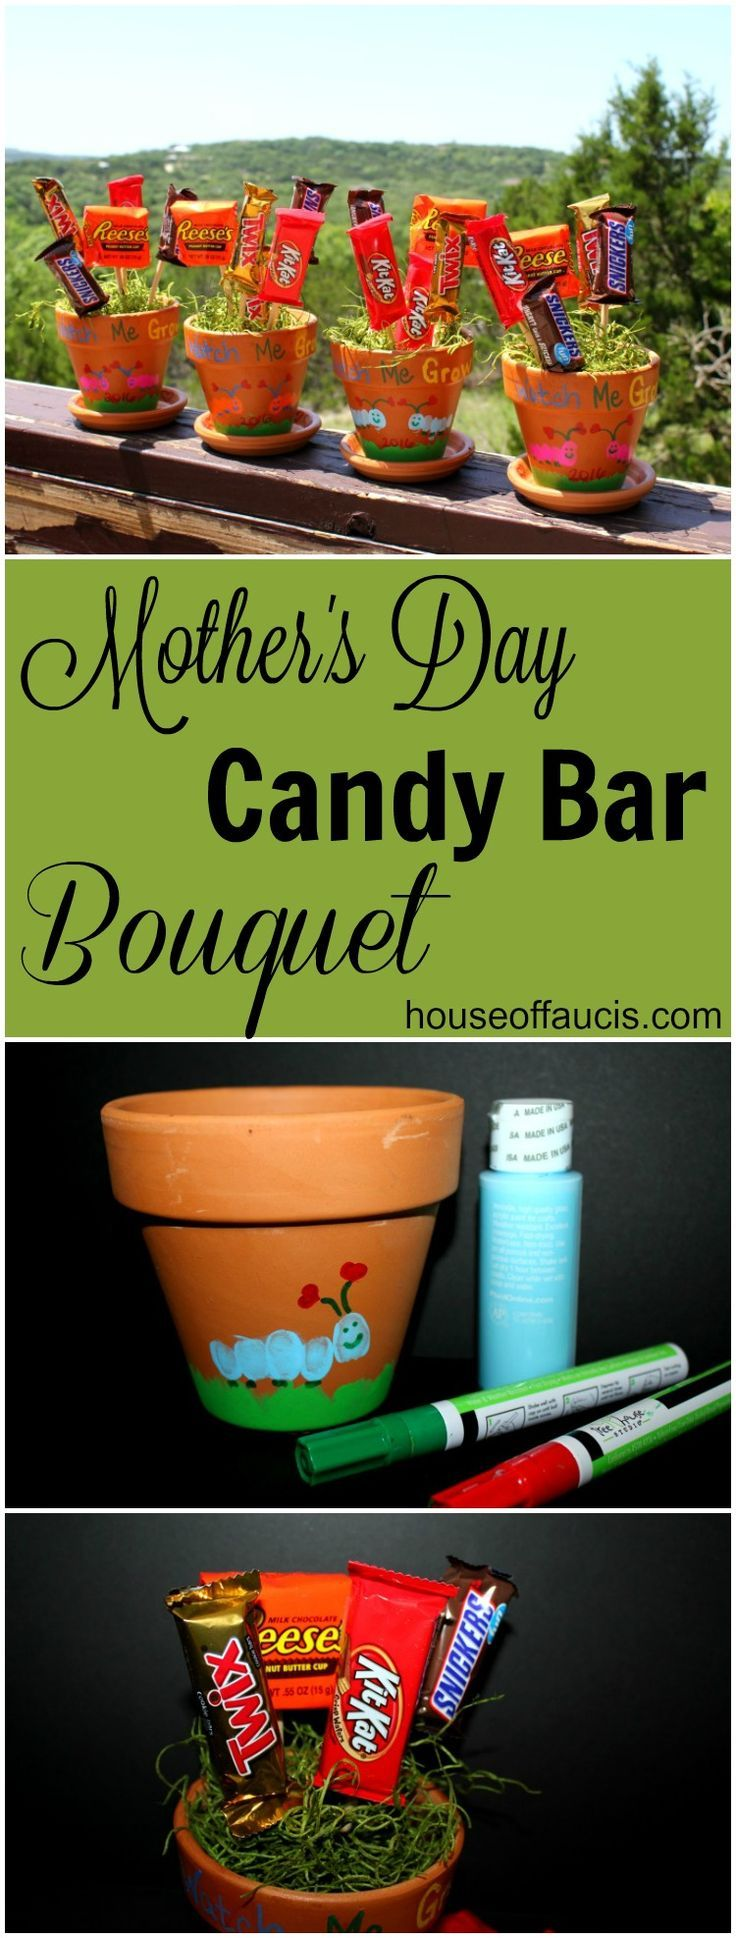 Mother's Day Candy Bar Bouquet